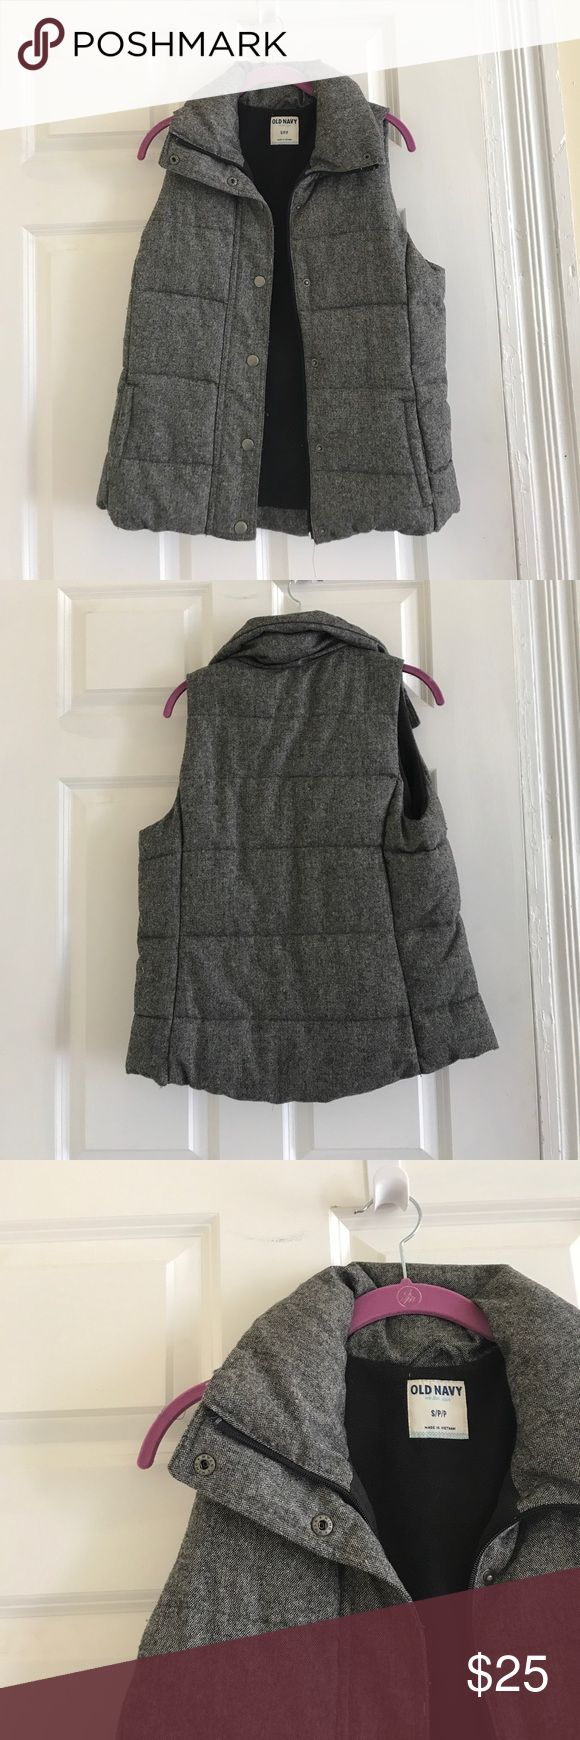 Gray Old Navy Vest Selling a thick, gray Old Navy vest - size Small. Never worn before - in perfect condition! Sleeveless, thick, and a dark gray color with a soft inner black lining. Old Navy Jackets & Coats Vests